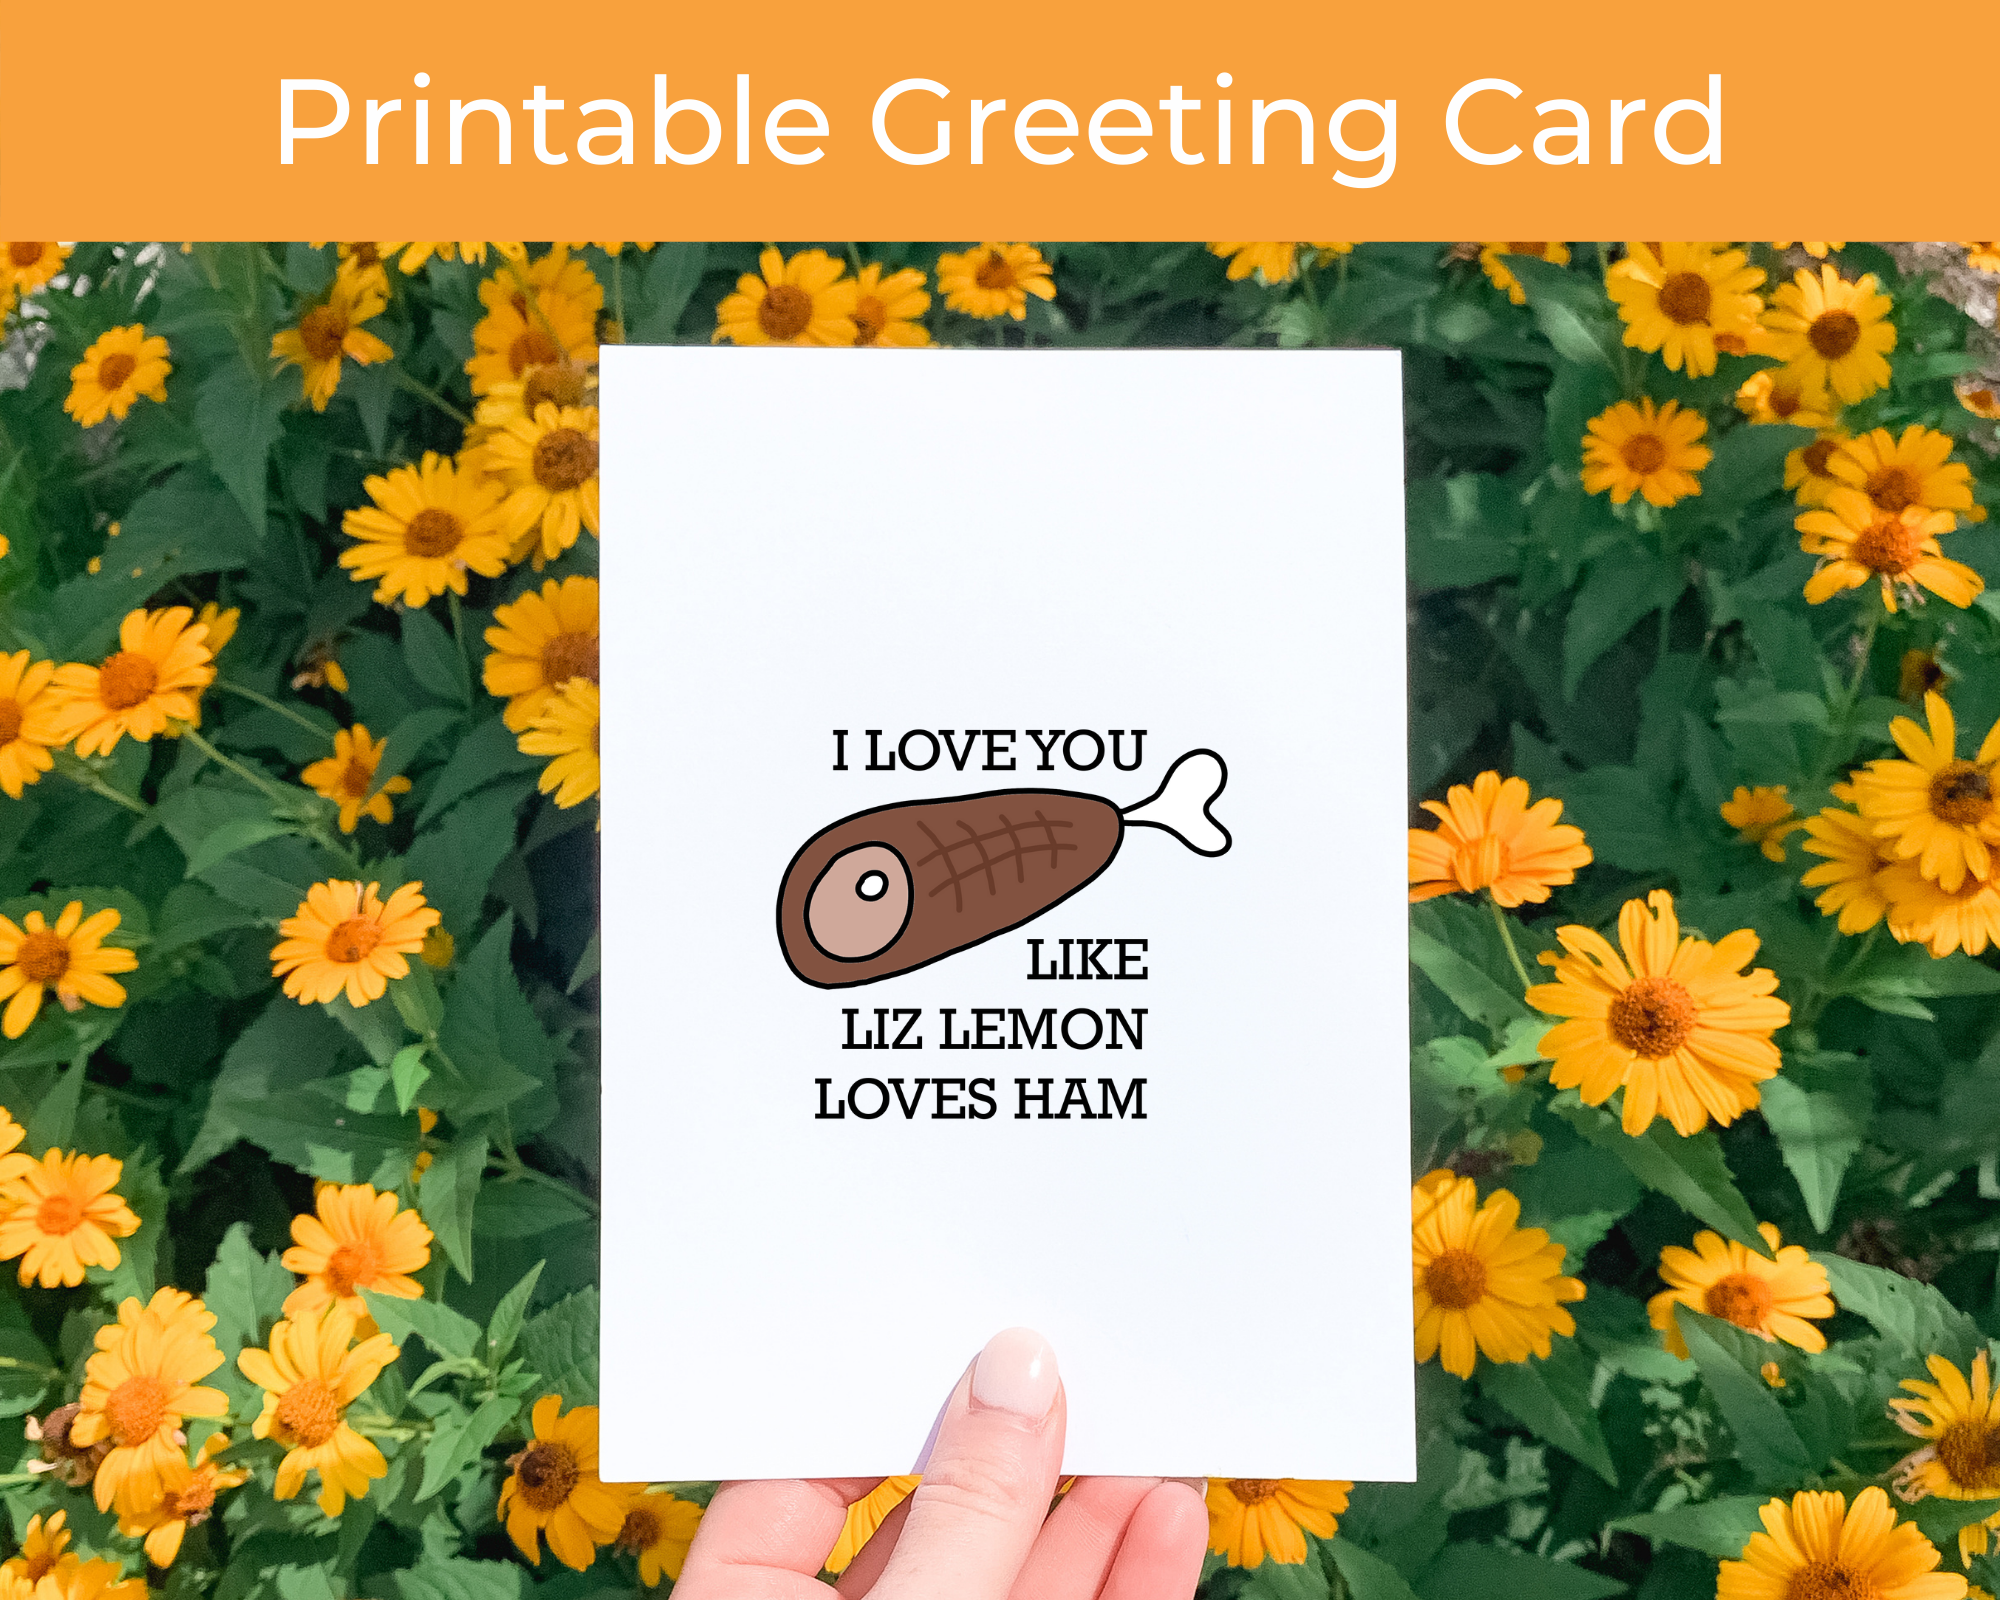 Printable Greeting Card  Inspired by Liz Lemon from 30 Rock